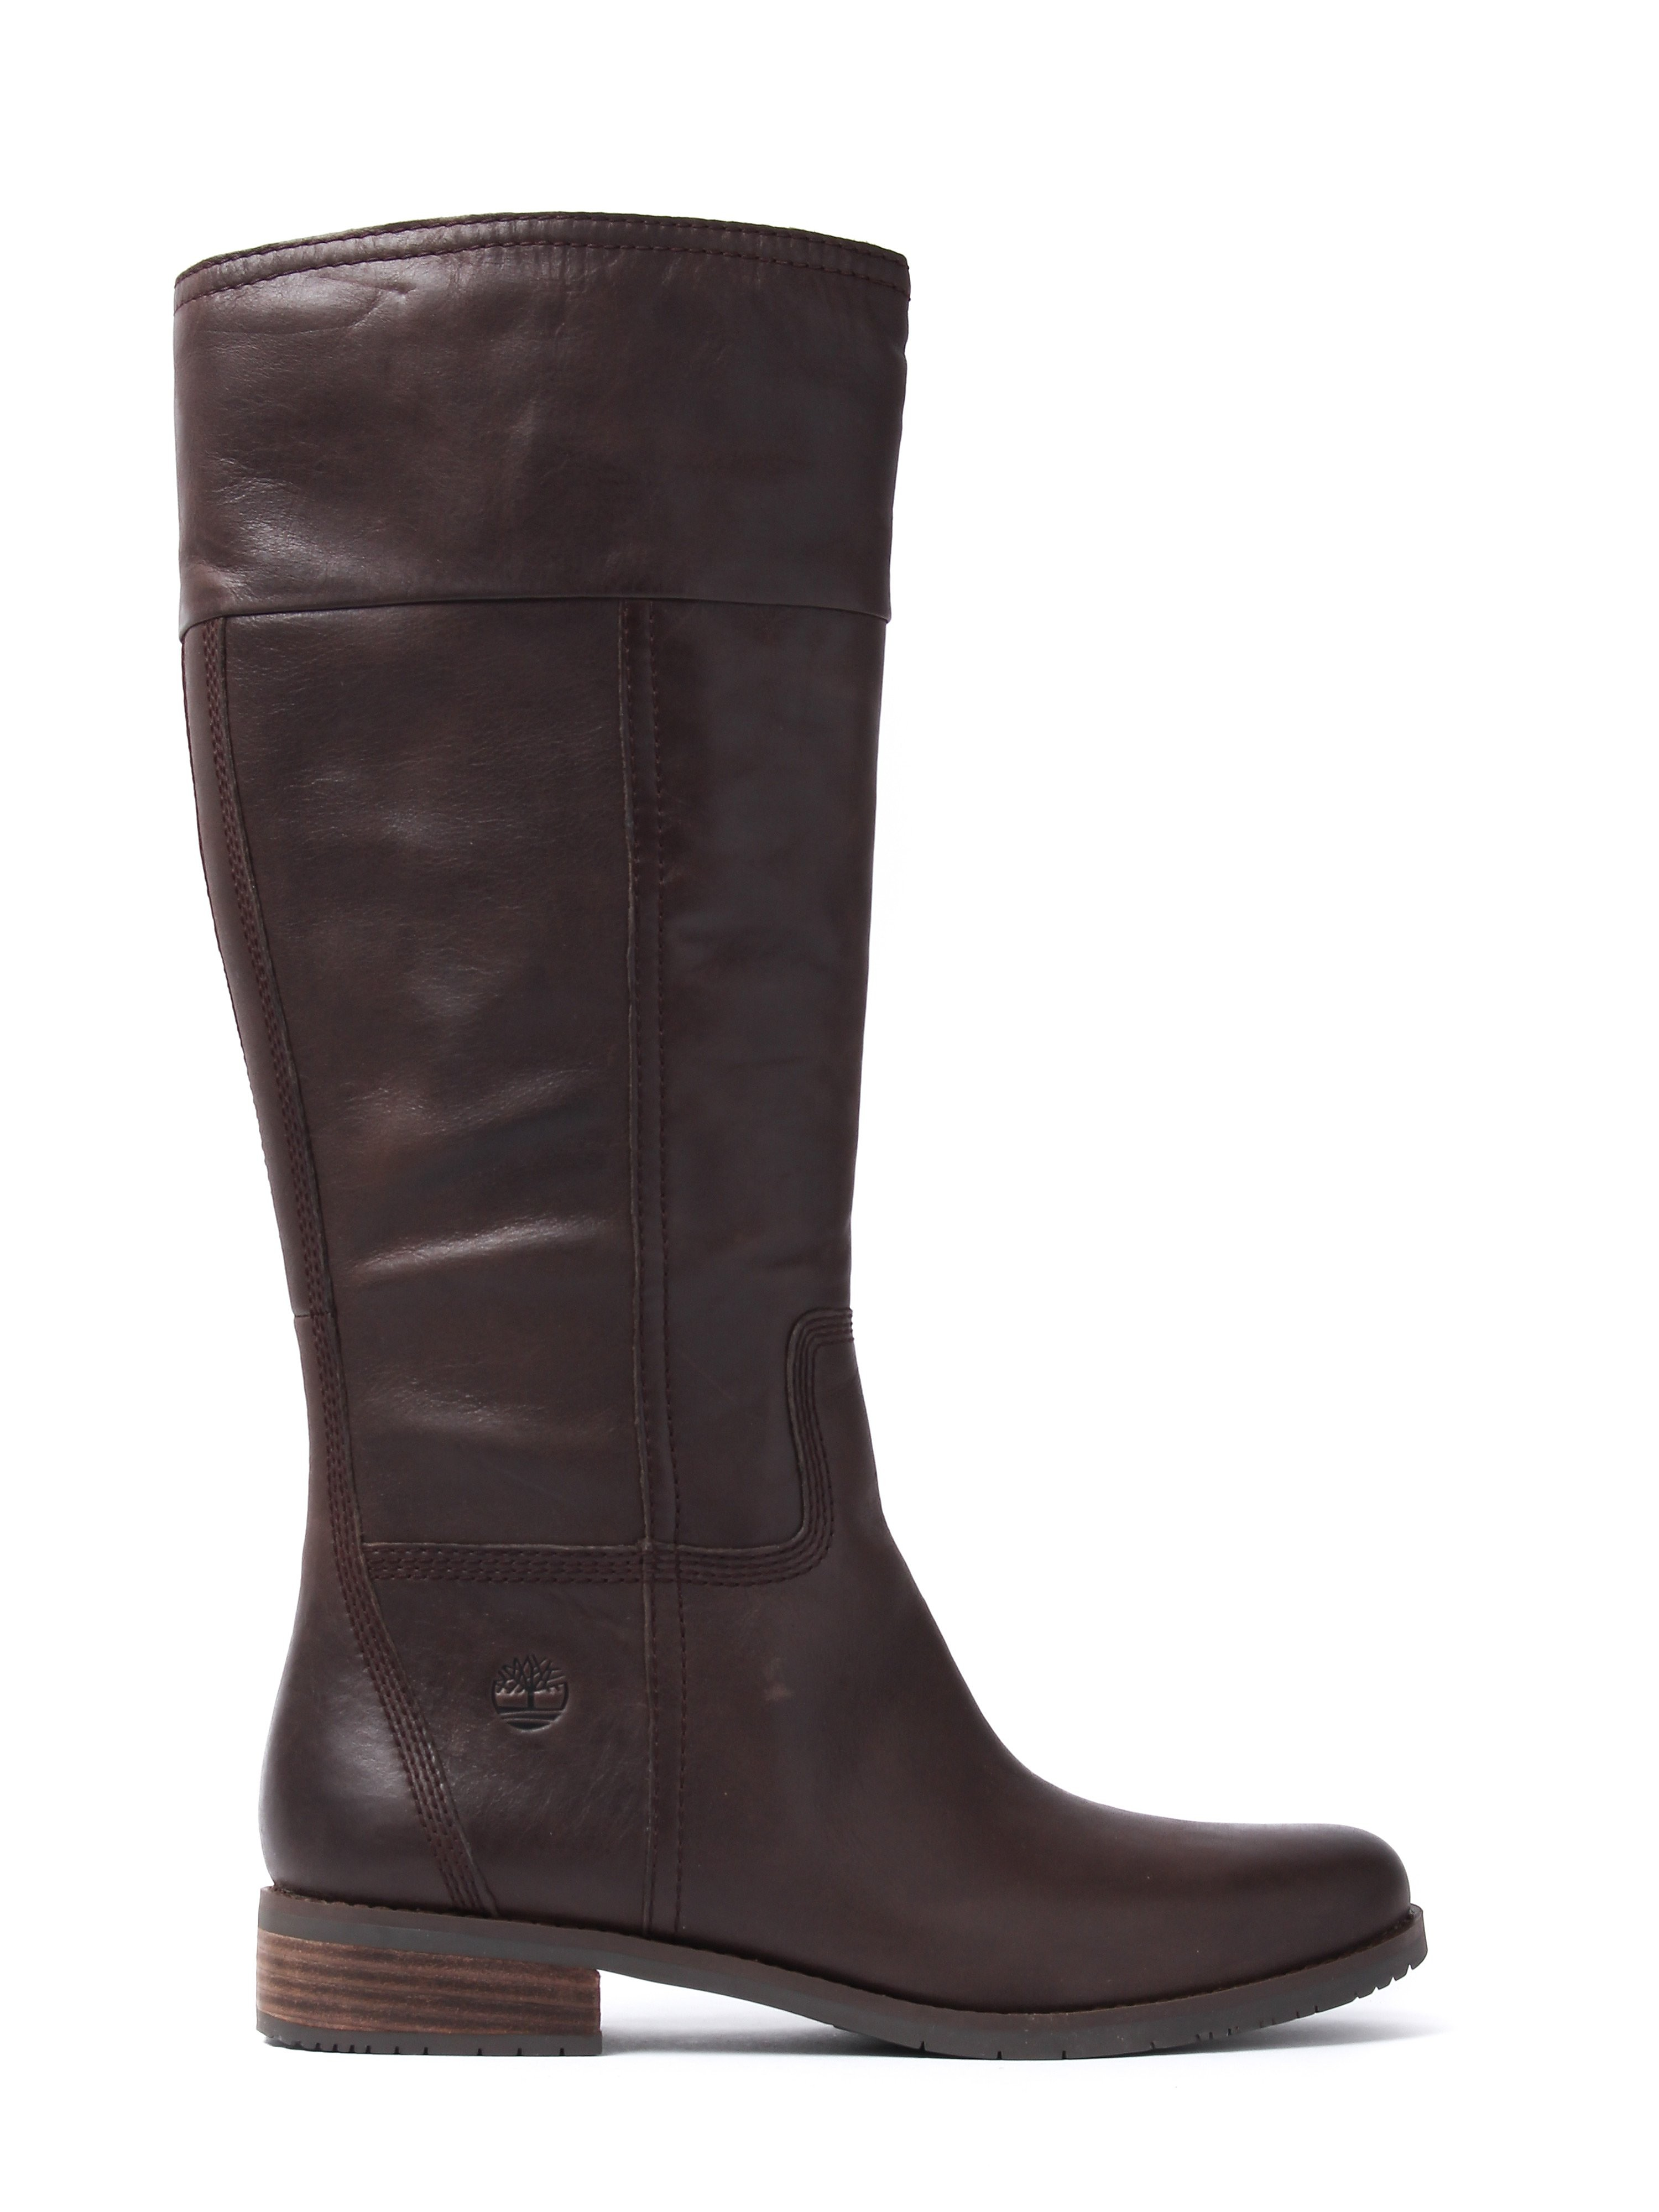 Timberland Women's Venice Park Tall Boots – Brown Leather